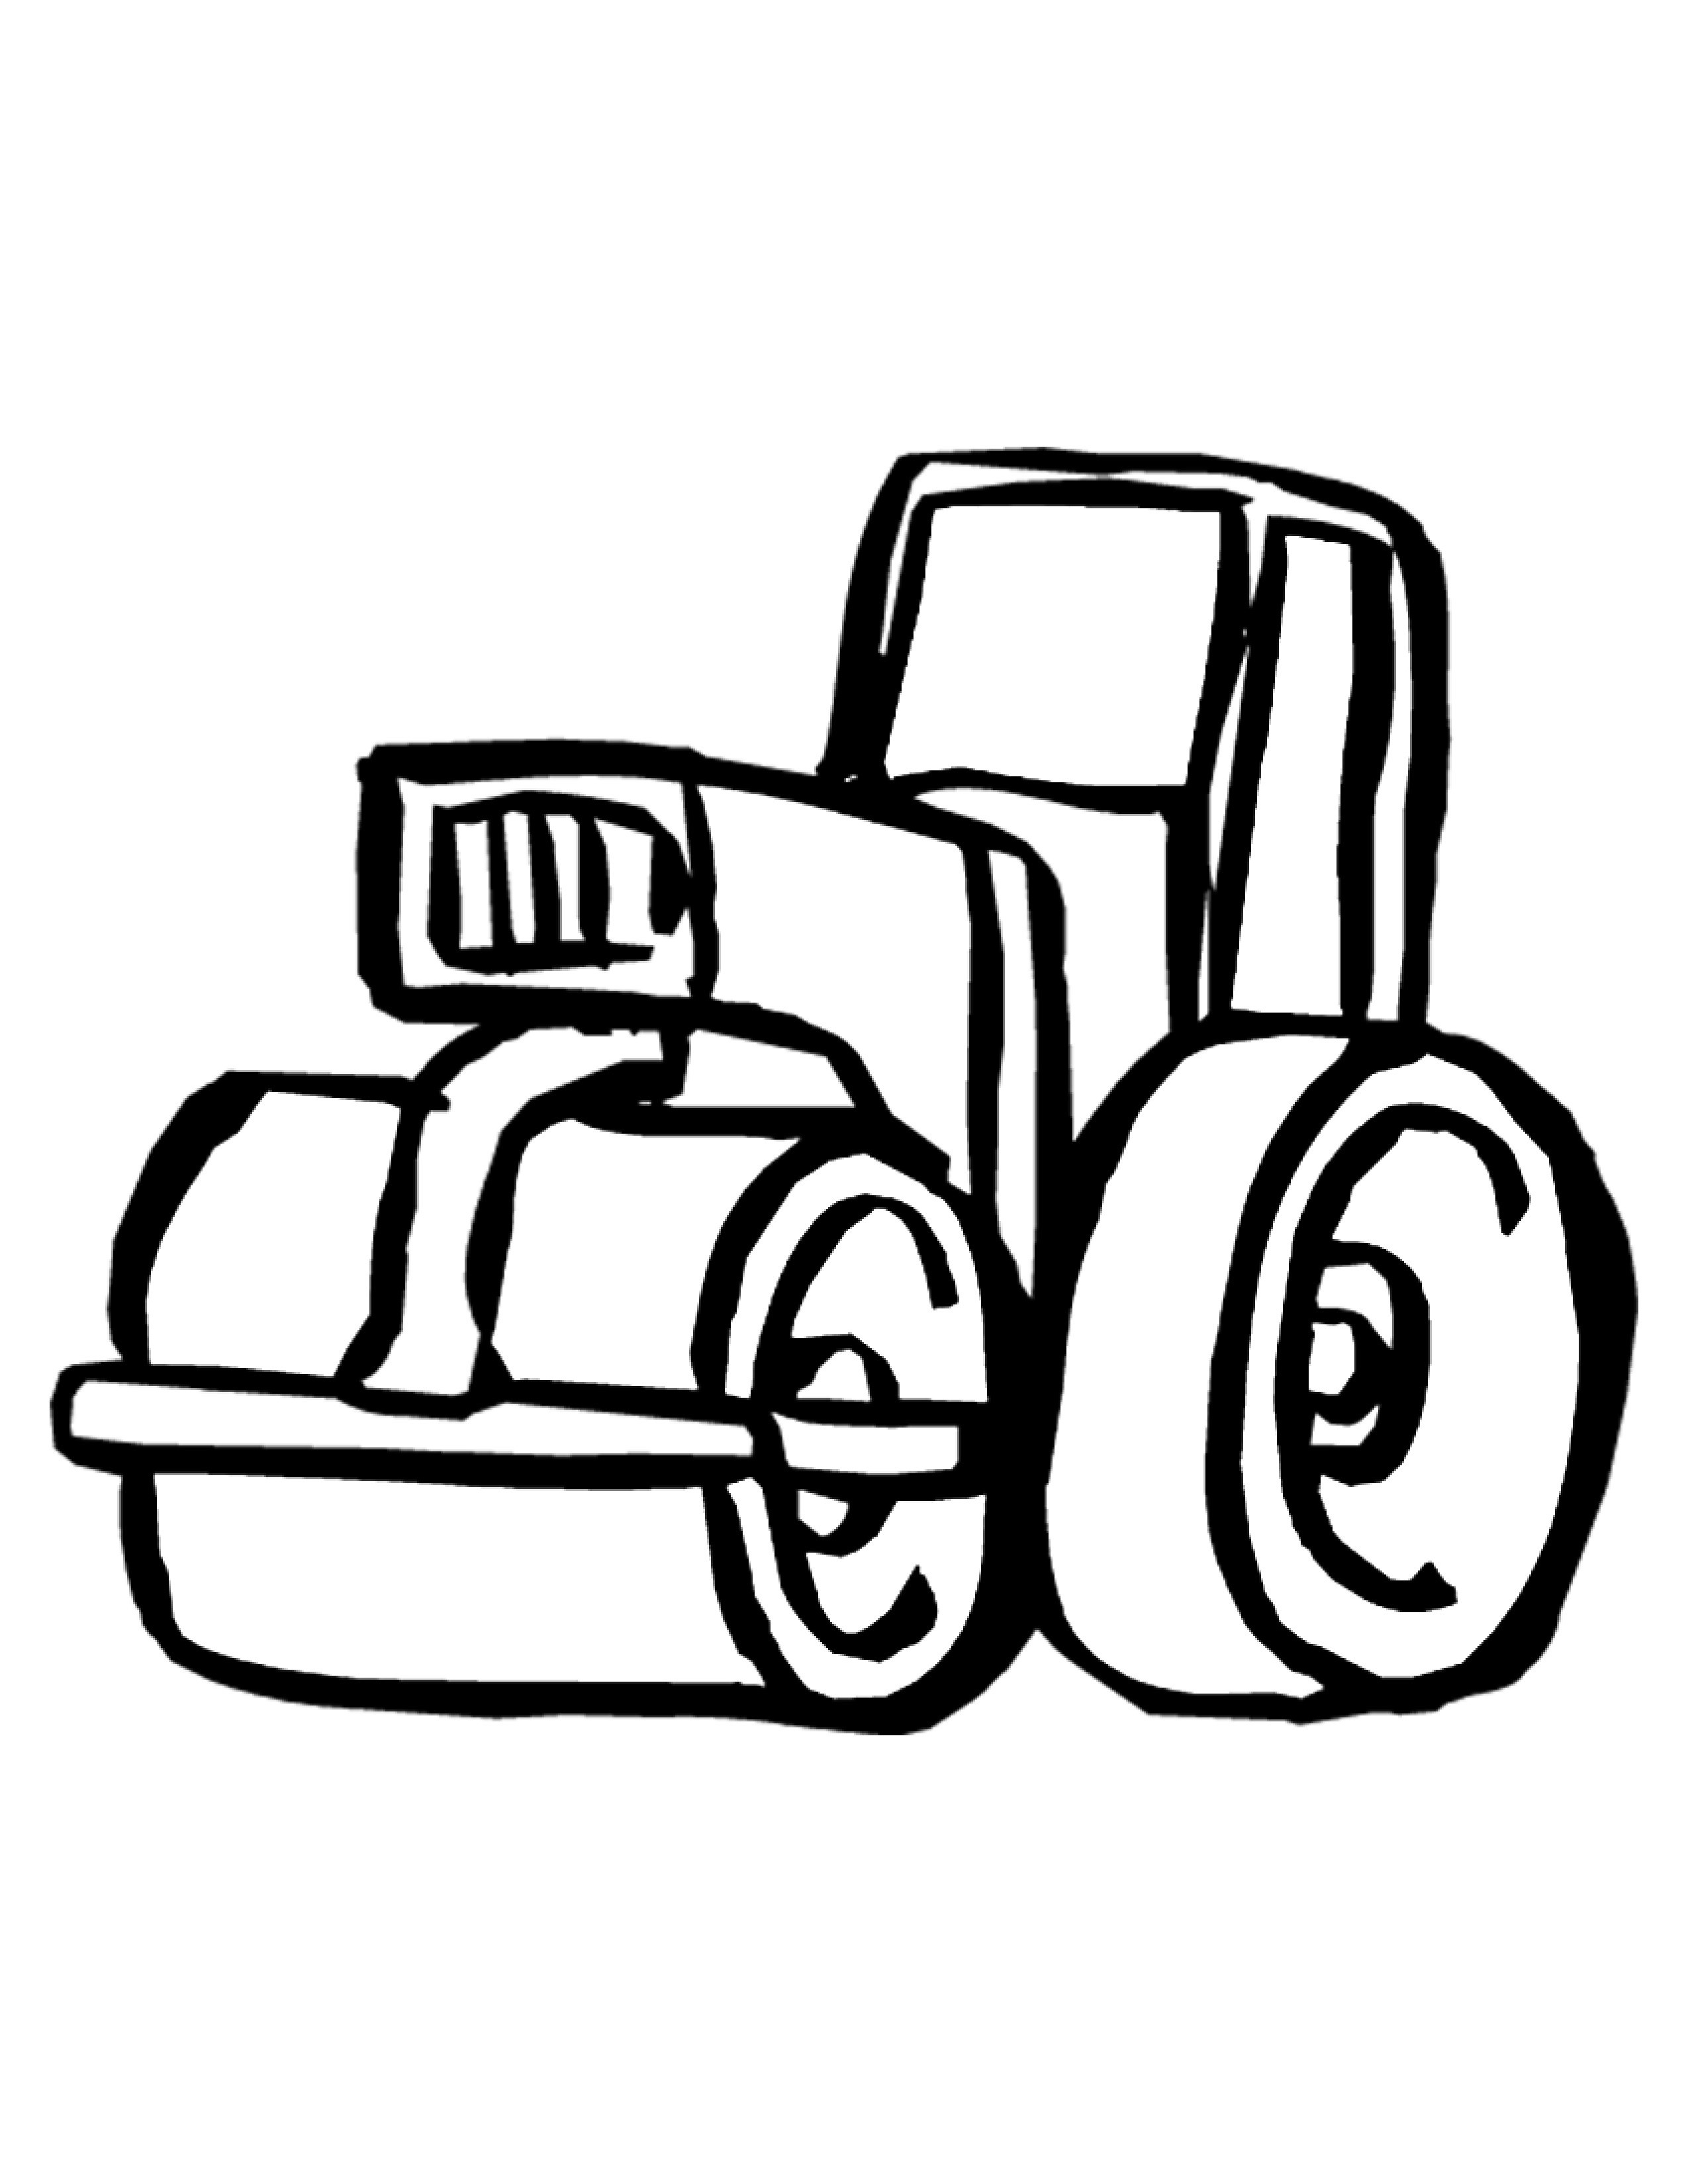 Free Coloring Sheets Construction Trucks  Construction Equipment Coloring Pages